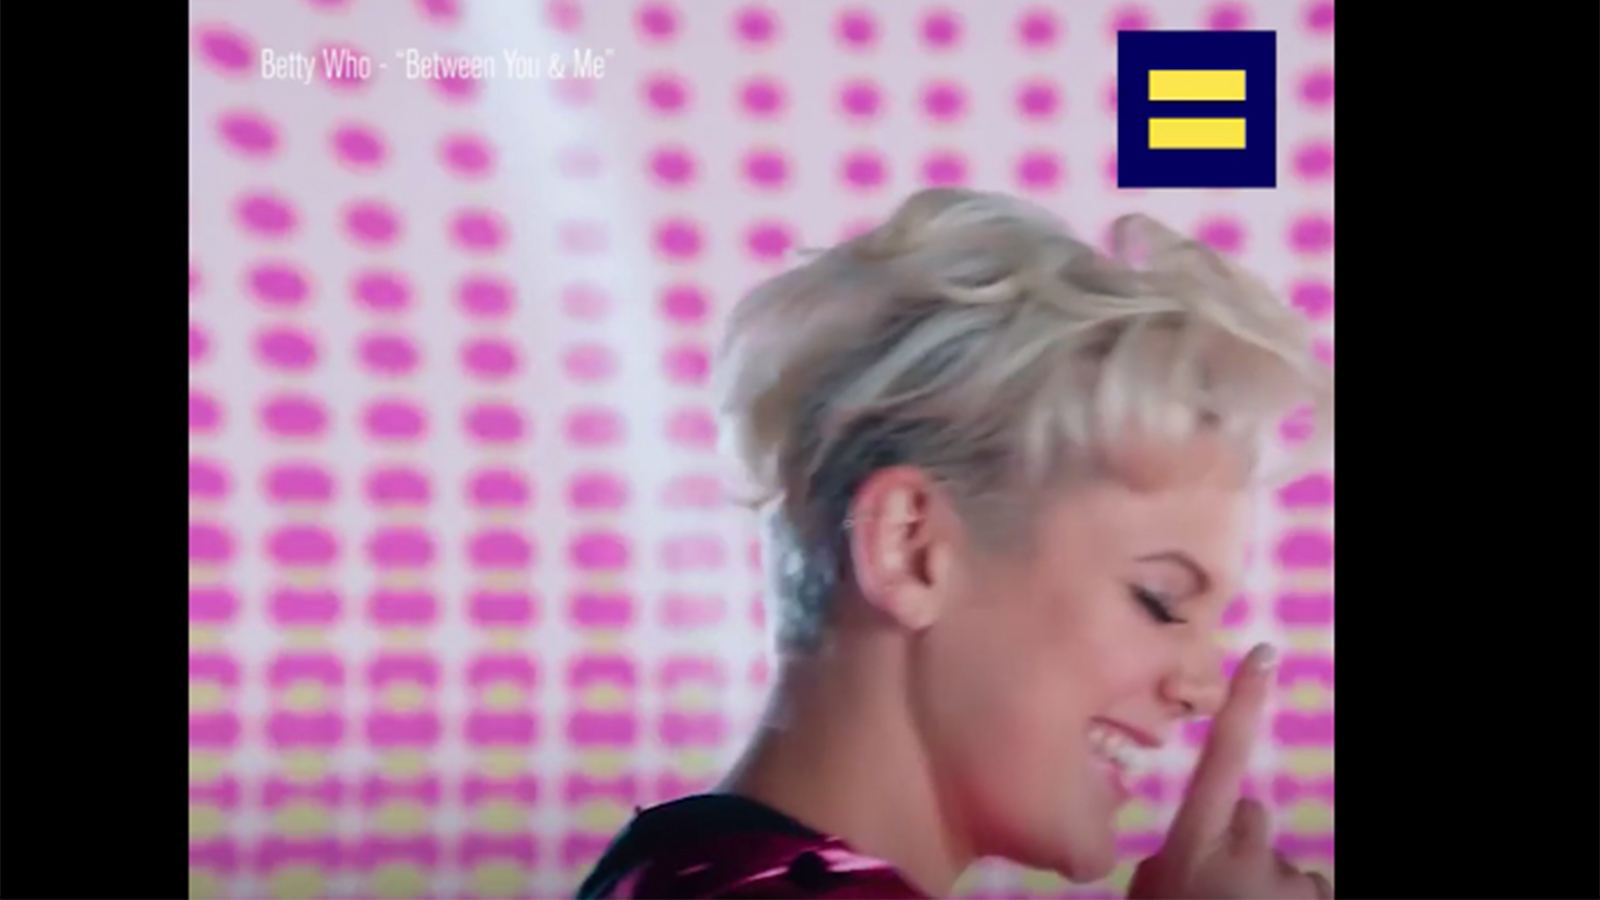 Artist Betty Who Joins HRC's Equality Rocks Campaign